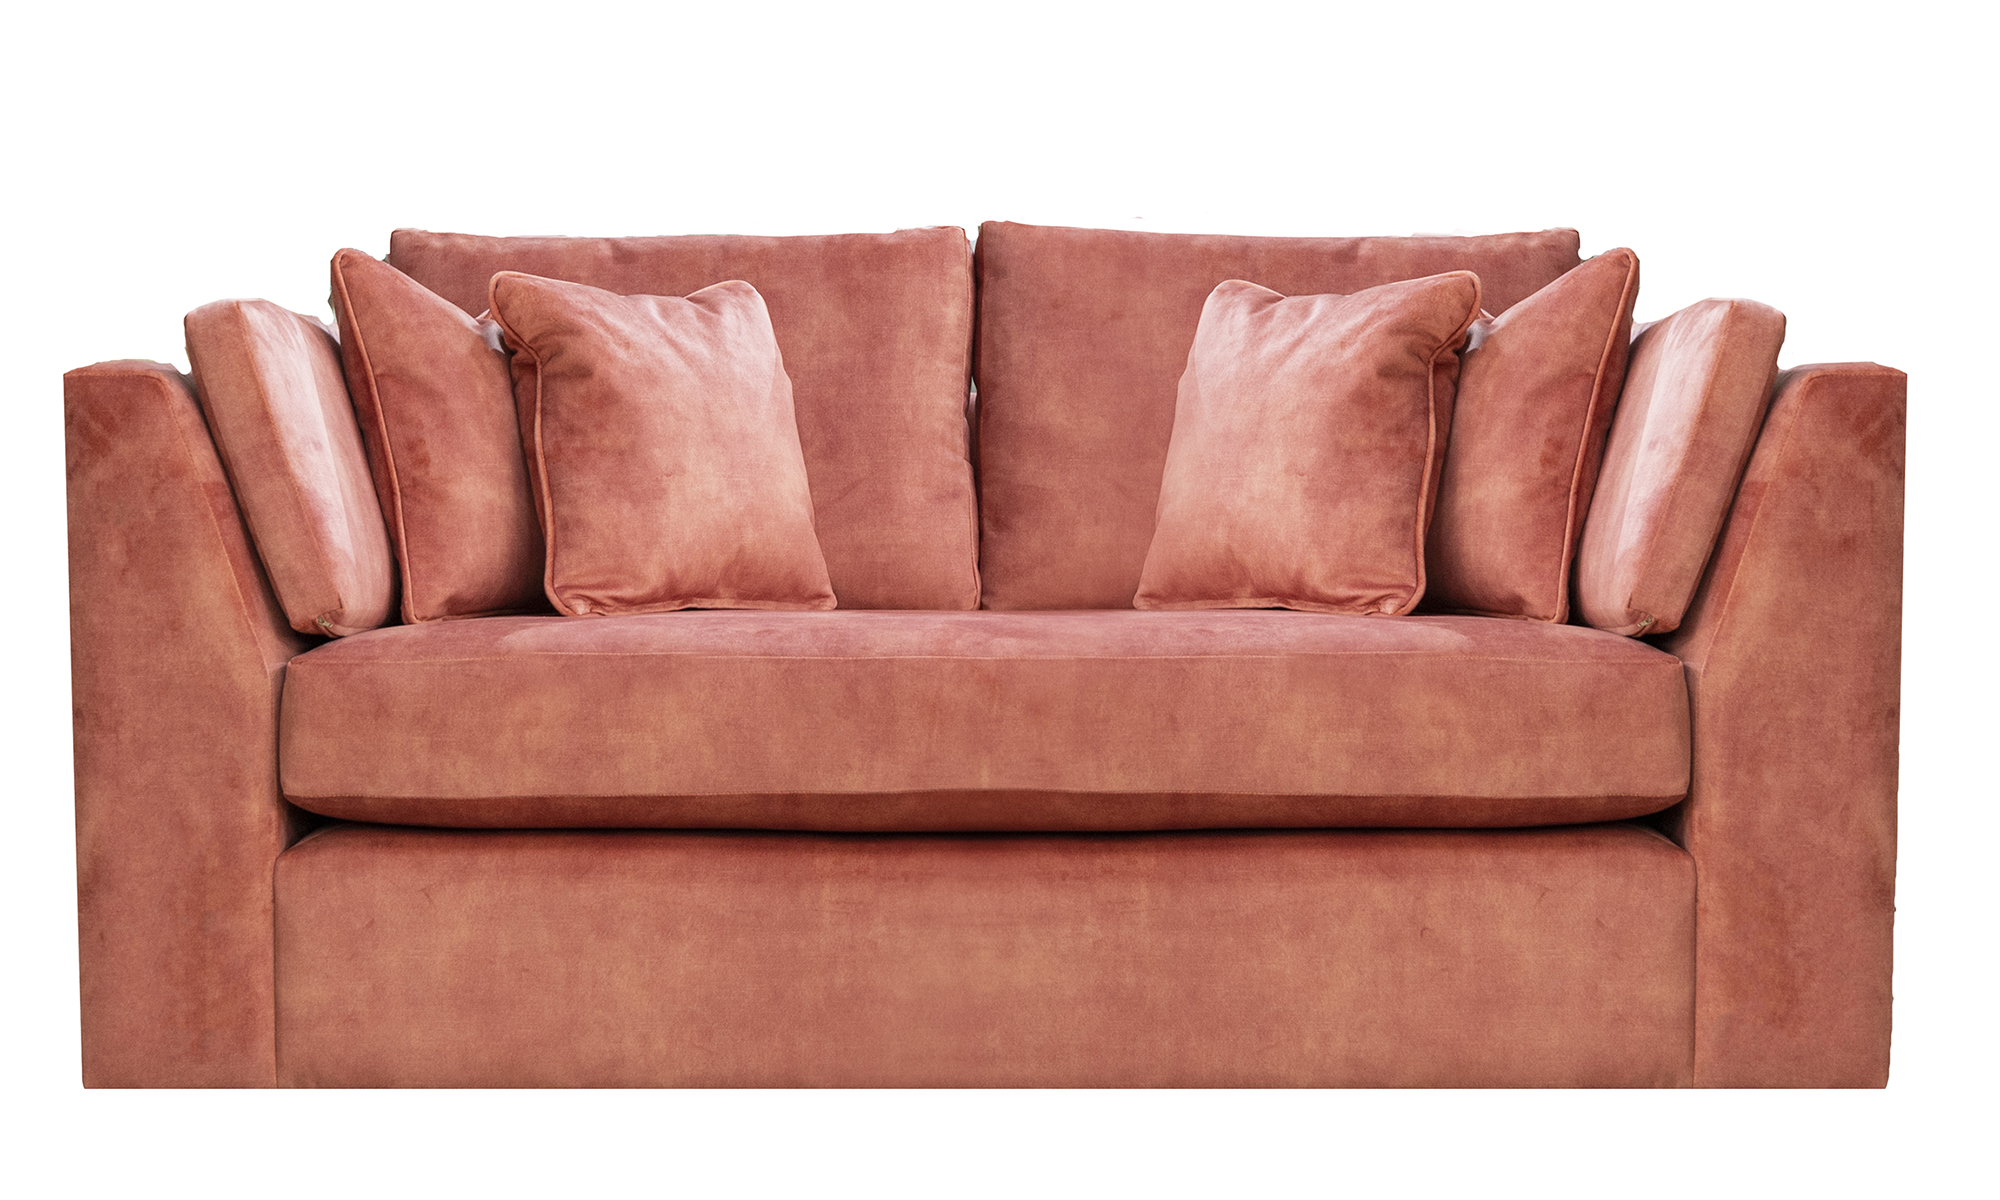 Como-2-Seater-Sofa-in-Lovely-Coral-Gold-Collection-Fabric